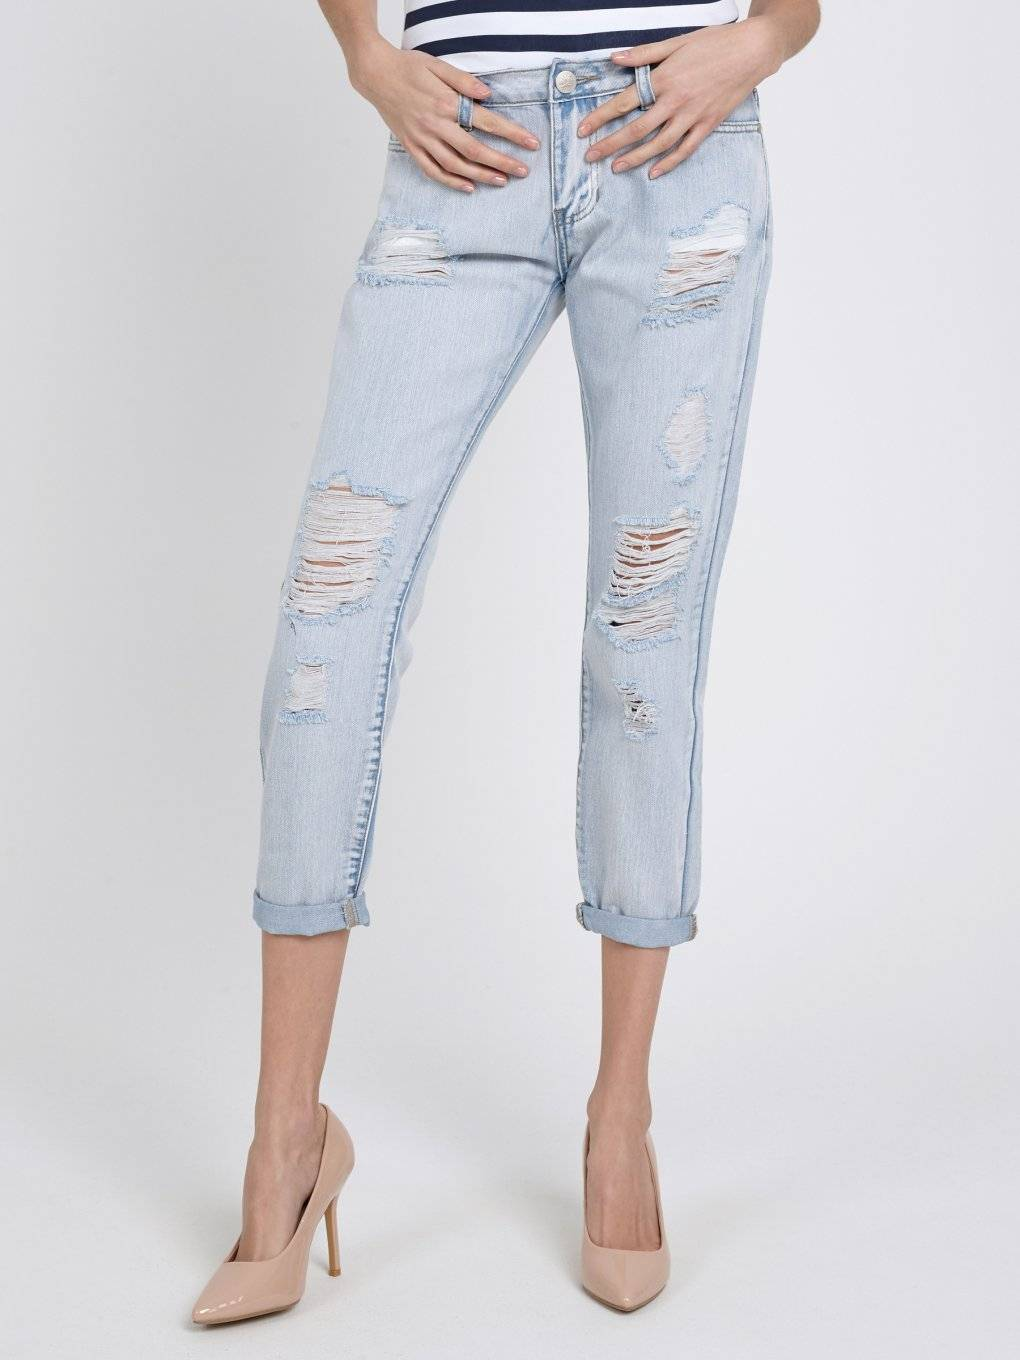 DAMAGED BOYFRIEND JEANS IN LIGHT BLUE WASH